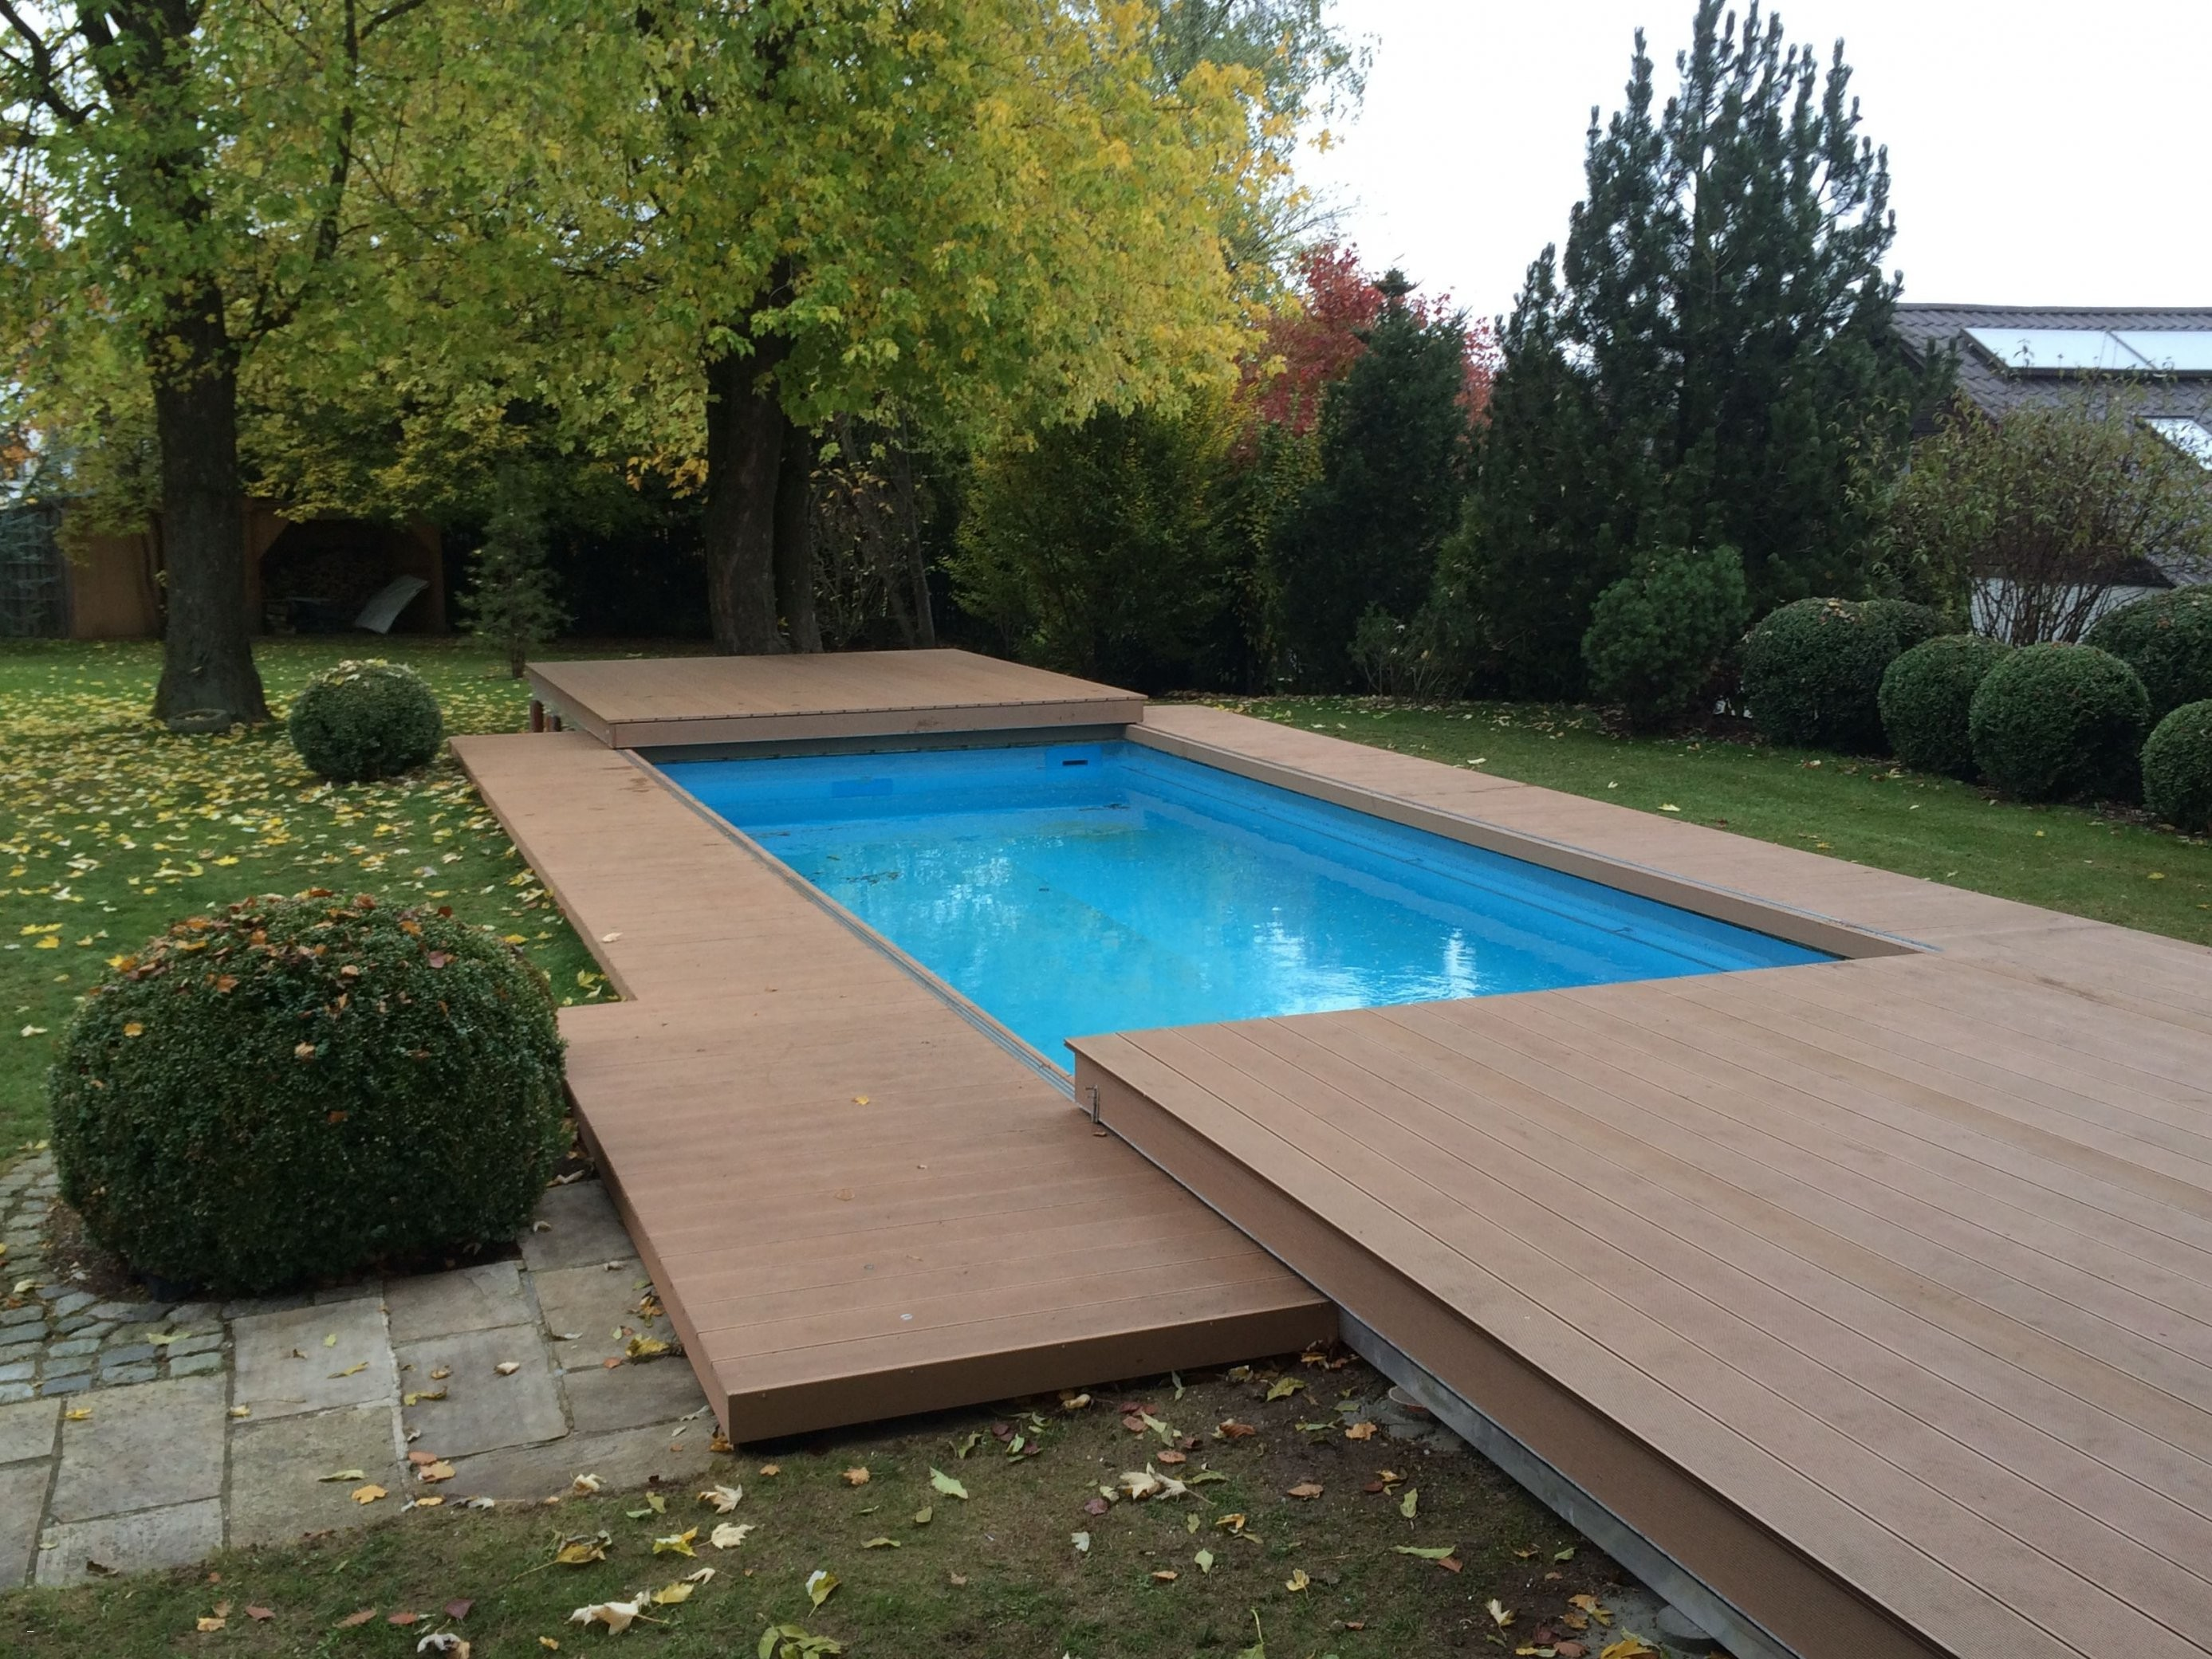 Pool Treppe Selber Bauen Jedes Genial Pool Terrasse Selber Bauen von Pool Terrasse Selber Bauen Photo